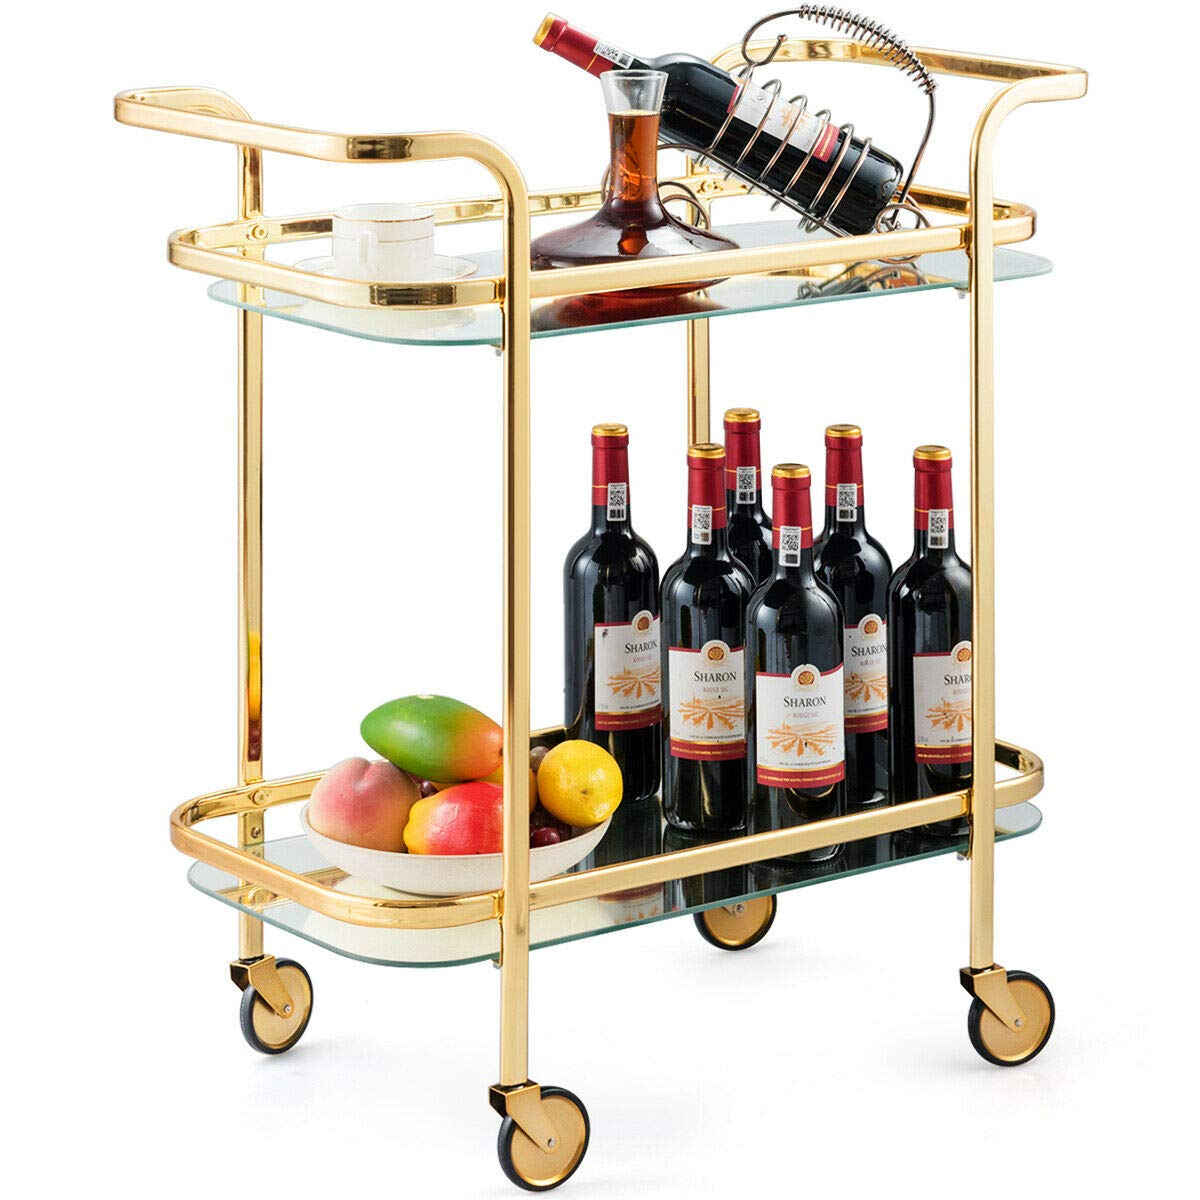 Tangkula Gold Bar Cart, Rolling Serving Cart with Metal Frame and 2 Tempered Glass Shelves, Easy to Move with 4 Wheels, Ideal for Kitchen, Living Room, Hotel, Wine/Tea Serving Cart (Gold) by Tangkula